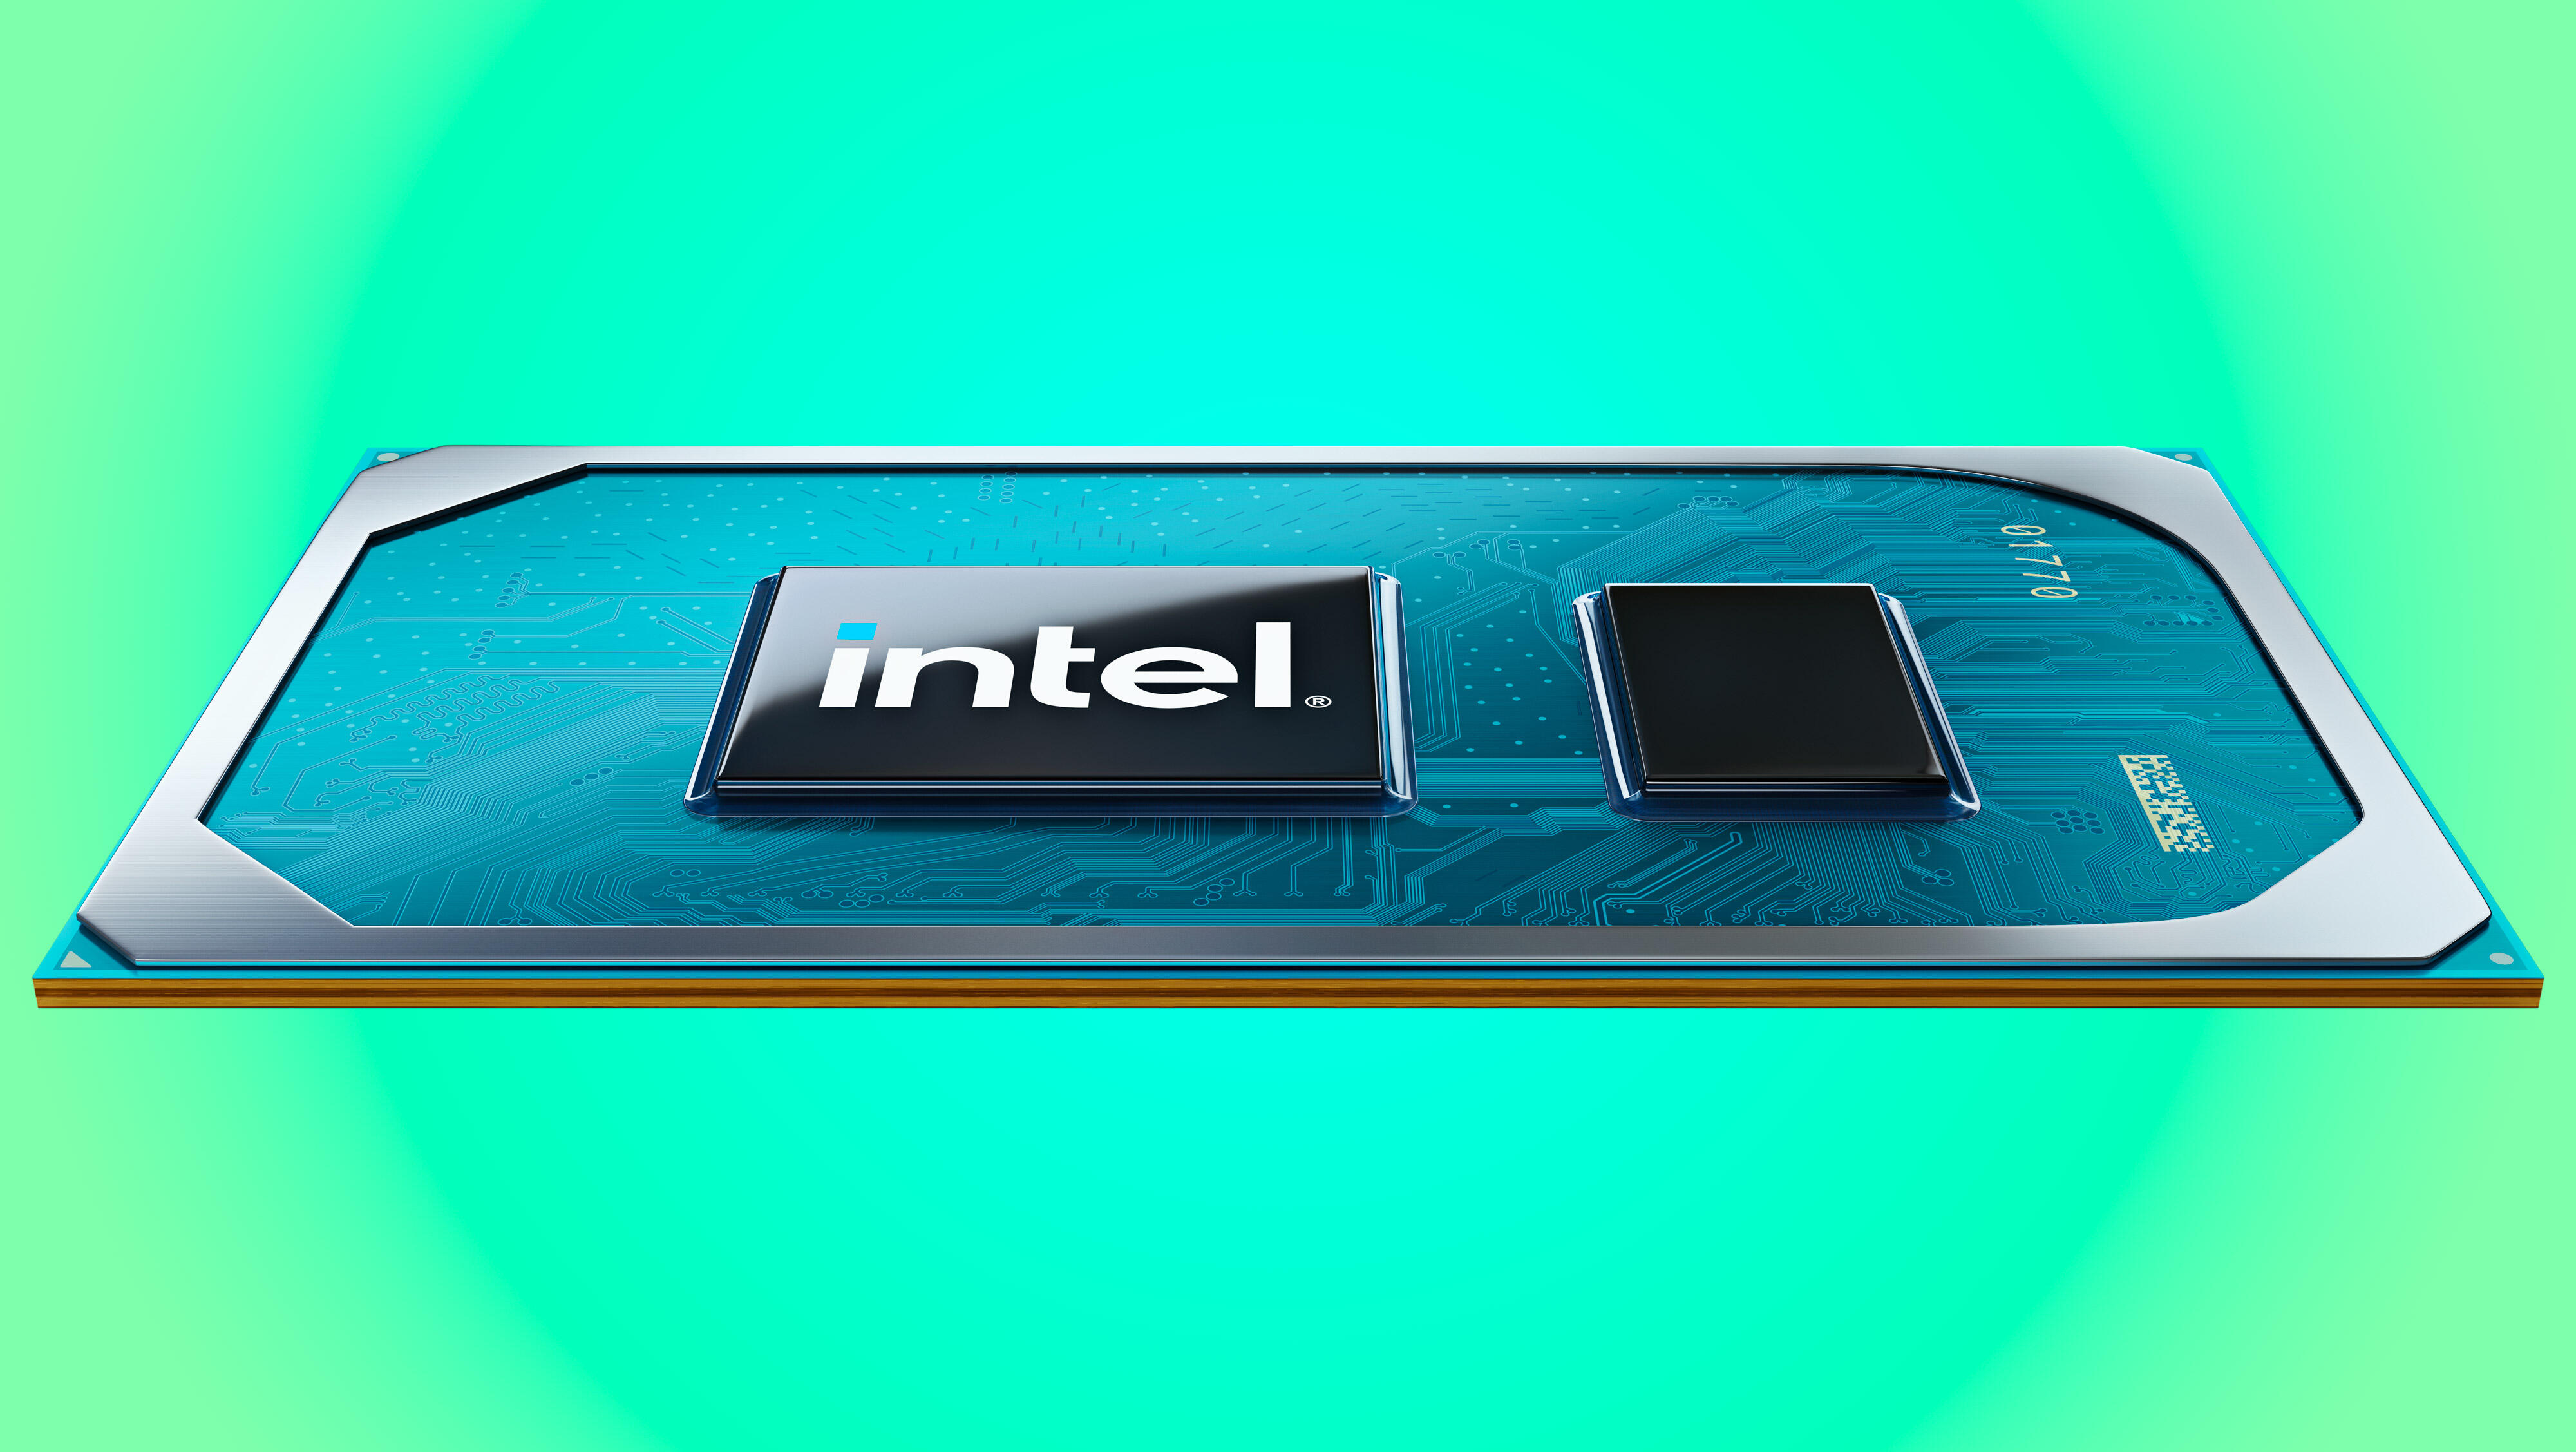 Intel says its 11th generation Core chip, code-named Tiger Lake, its most significant new processor in a decade.